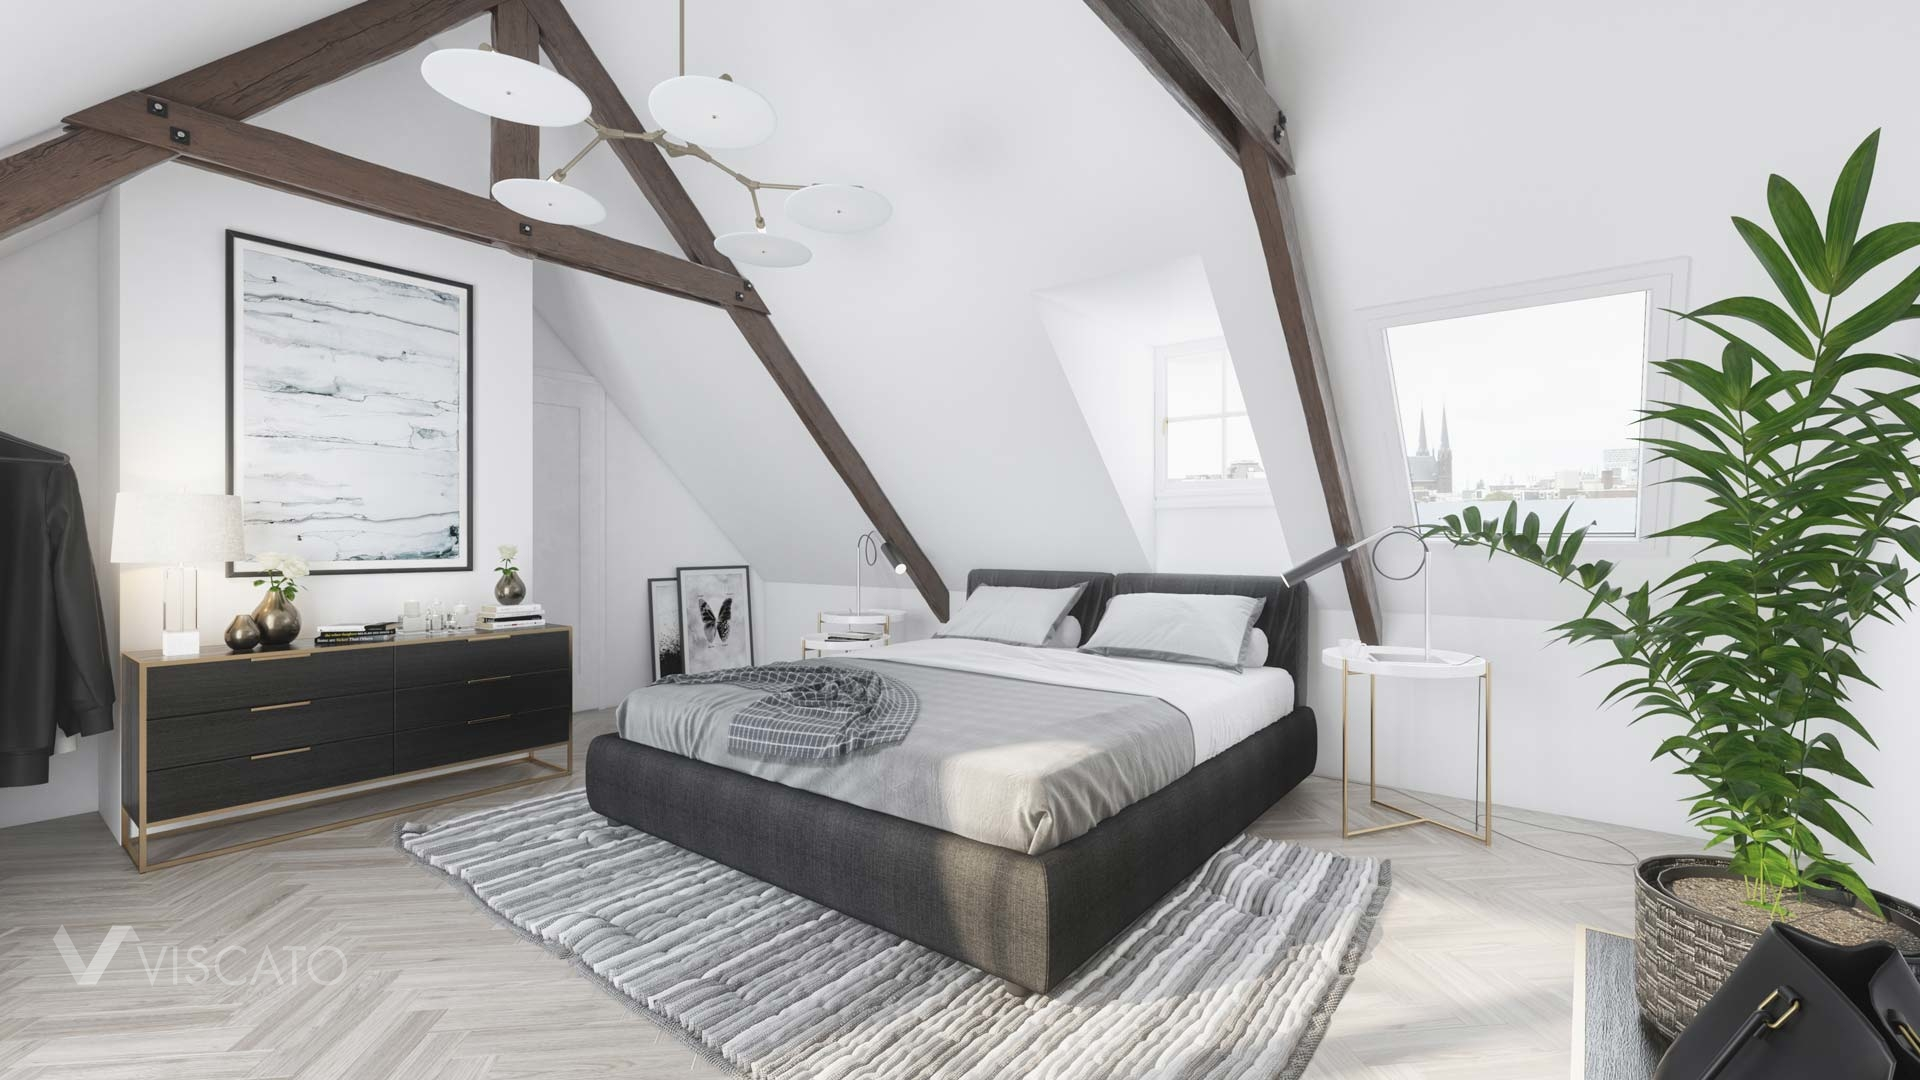 bedroom in the attic, 3D visualizations